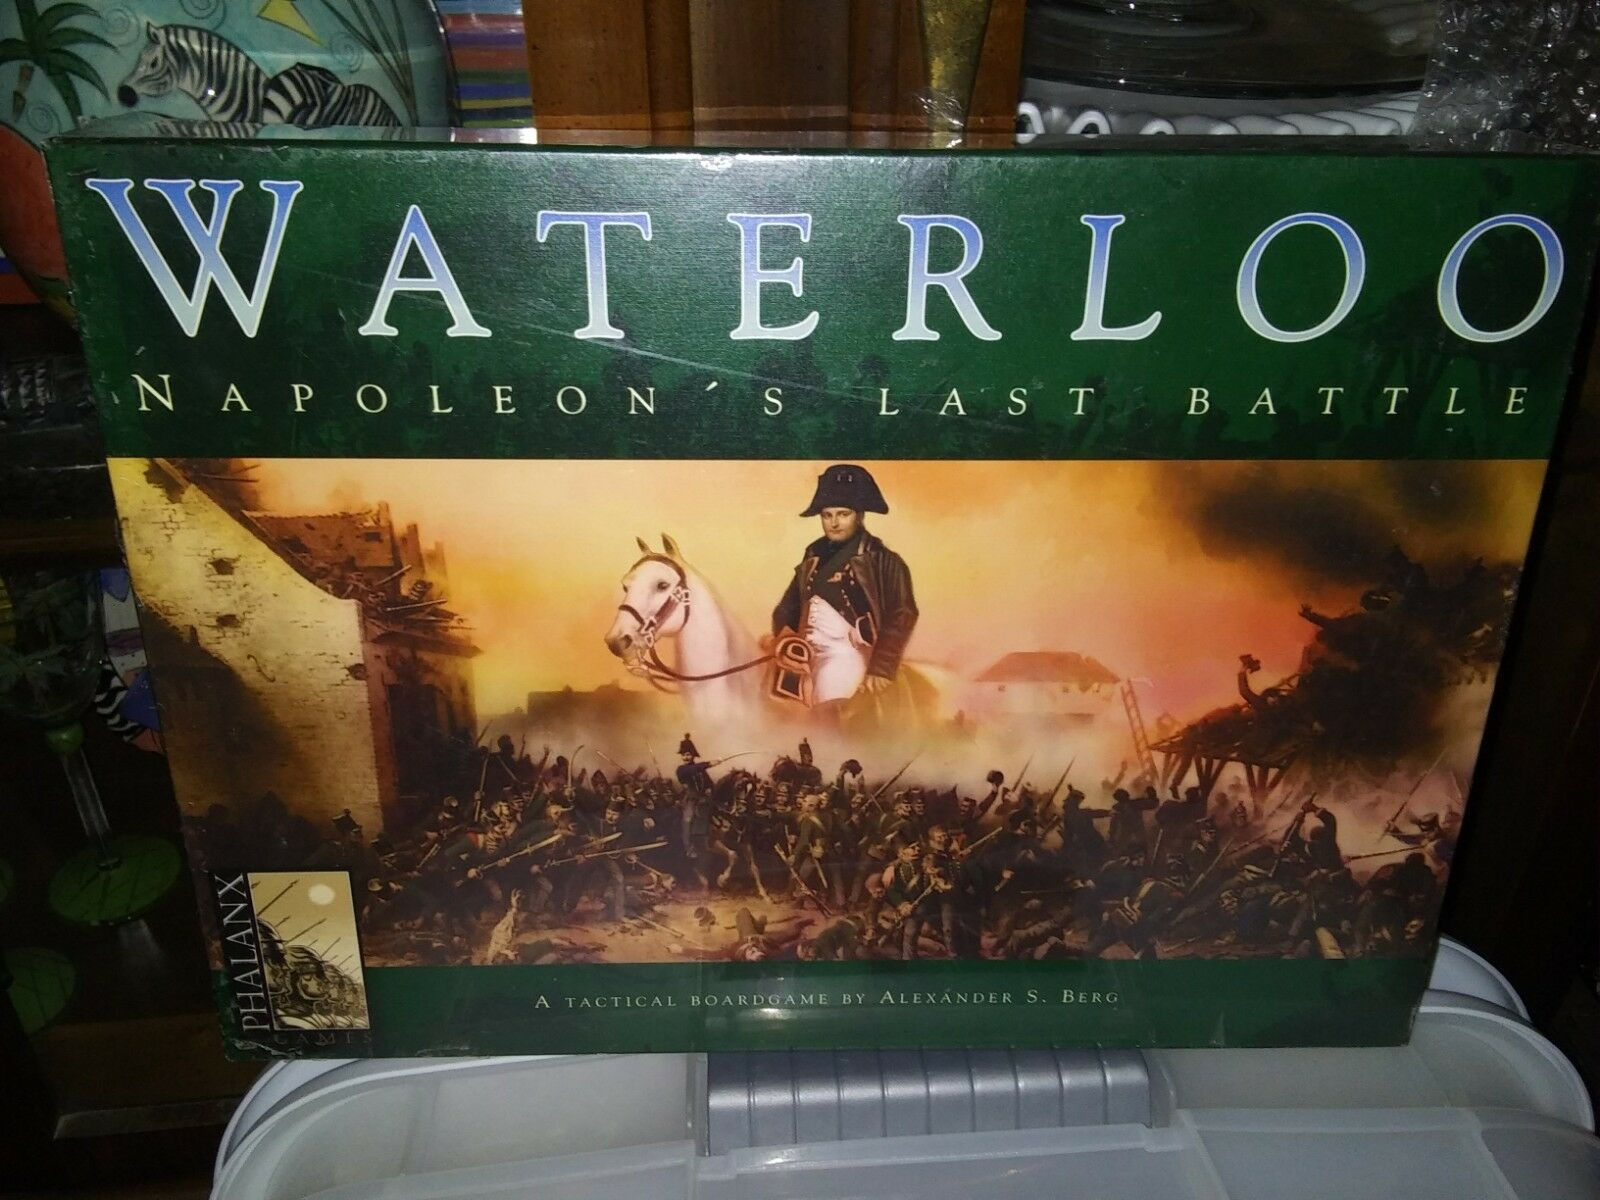 WATERLOO NAPOLEON'S LAST BATTLE PHALANX GAMES TACTICAL BOARD GAME NEW SEALED BOX